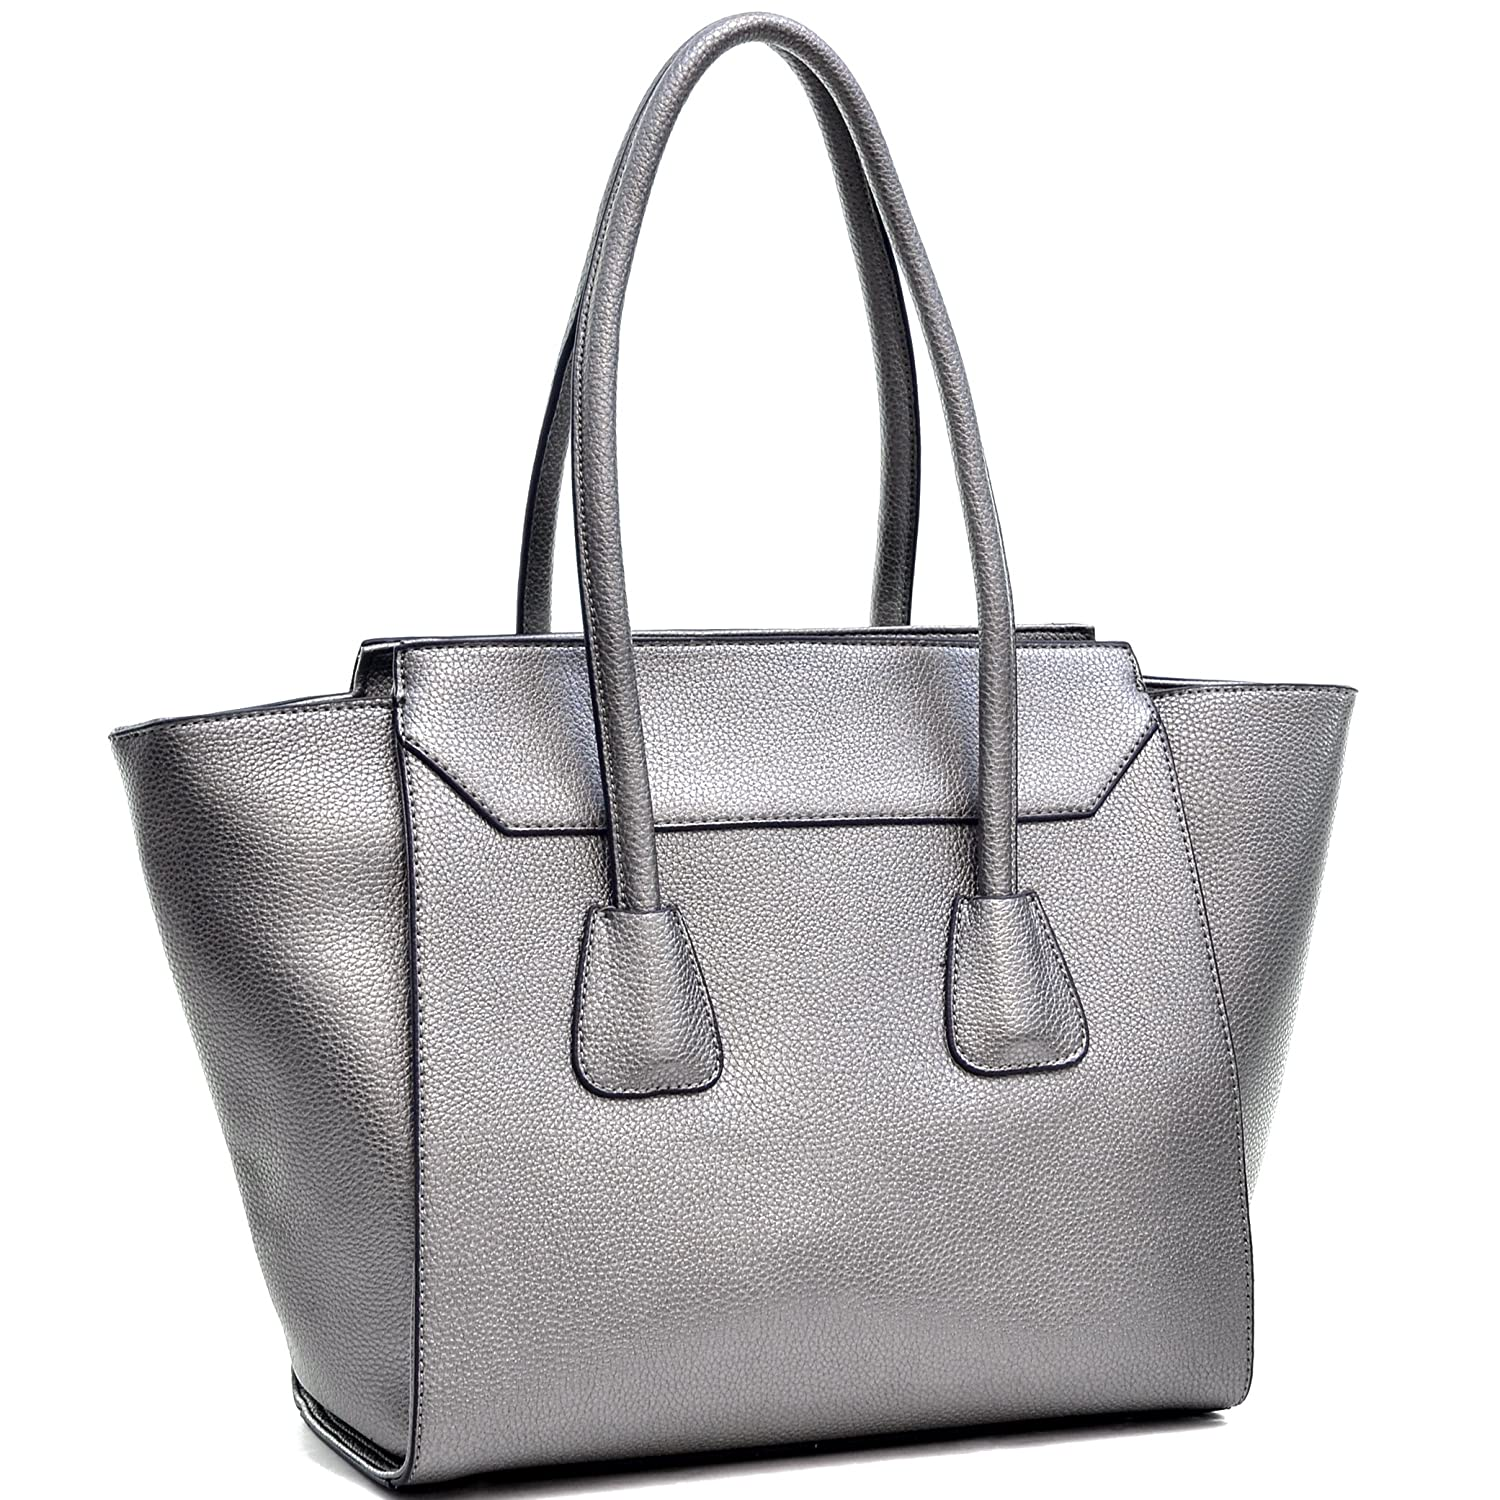 Dasein Faux Leather Winged Satchel Shoulder Bag - Silver